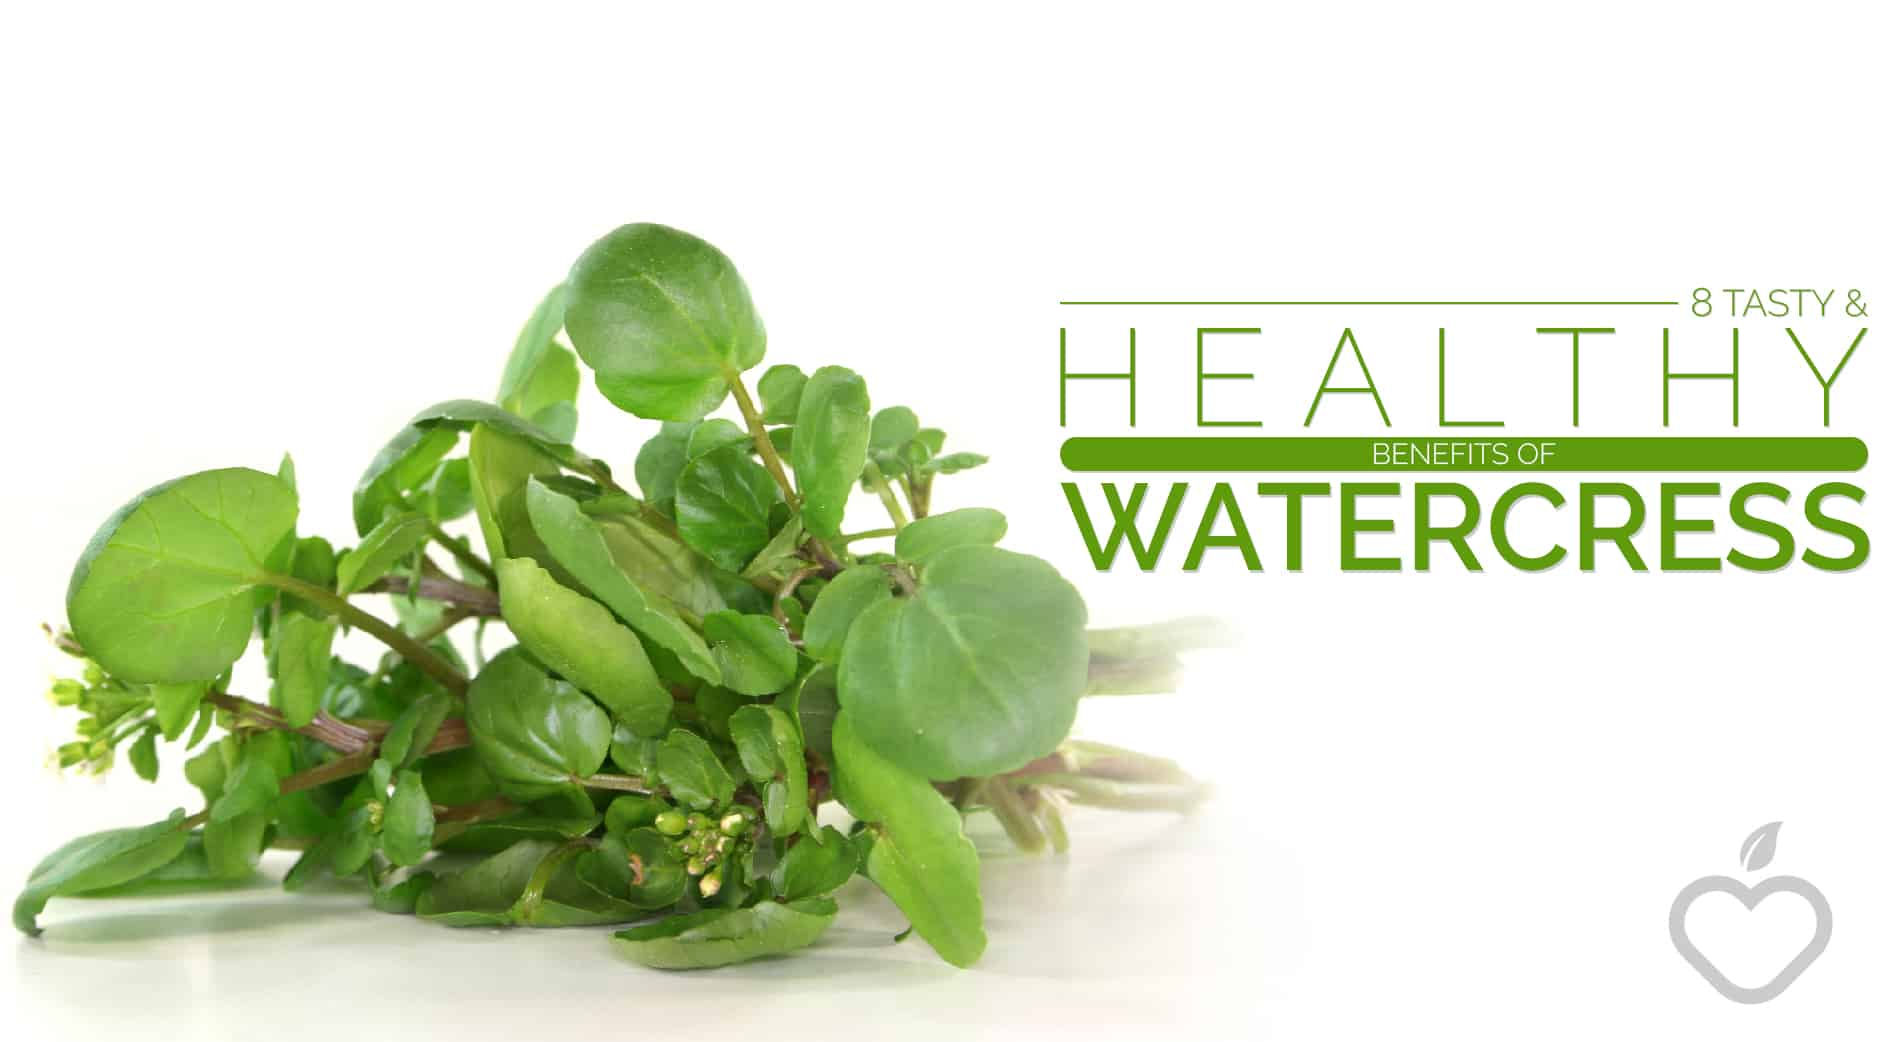 Watercress Image Design 1 - 8 Tasty And Healthy Benefits Of Watercress